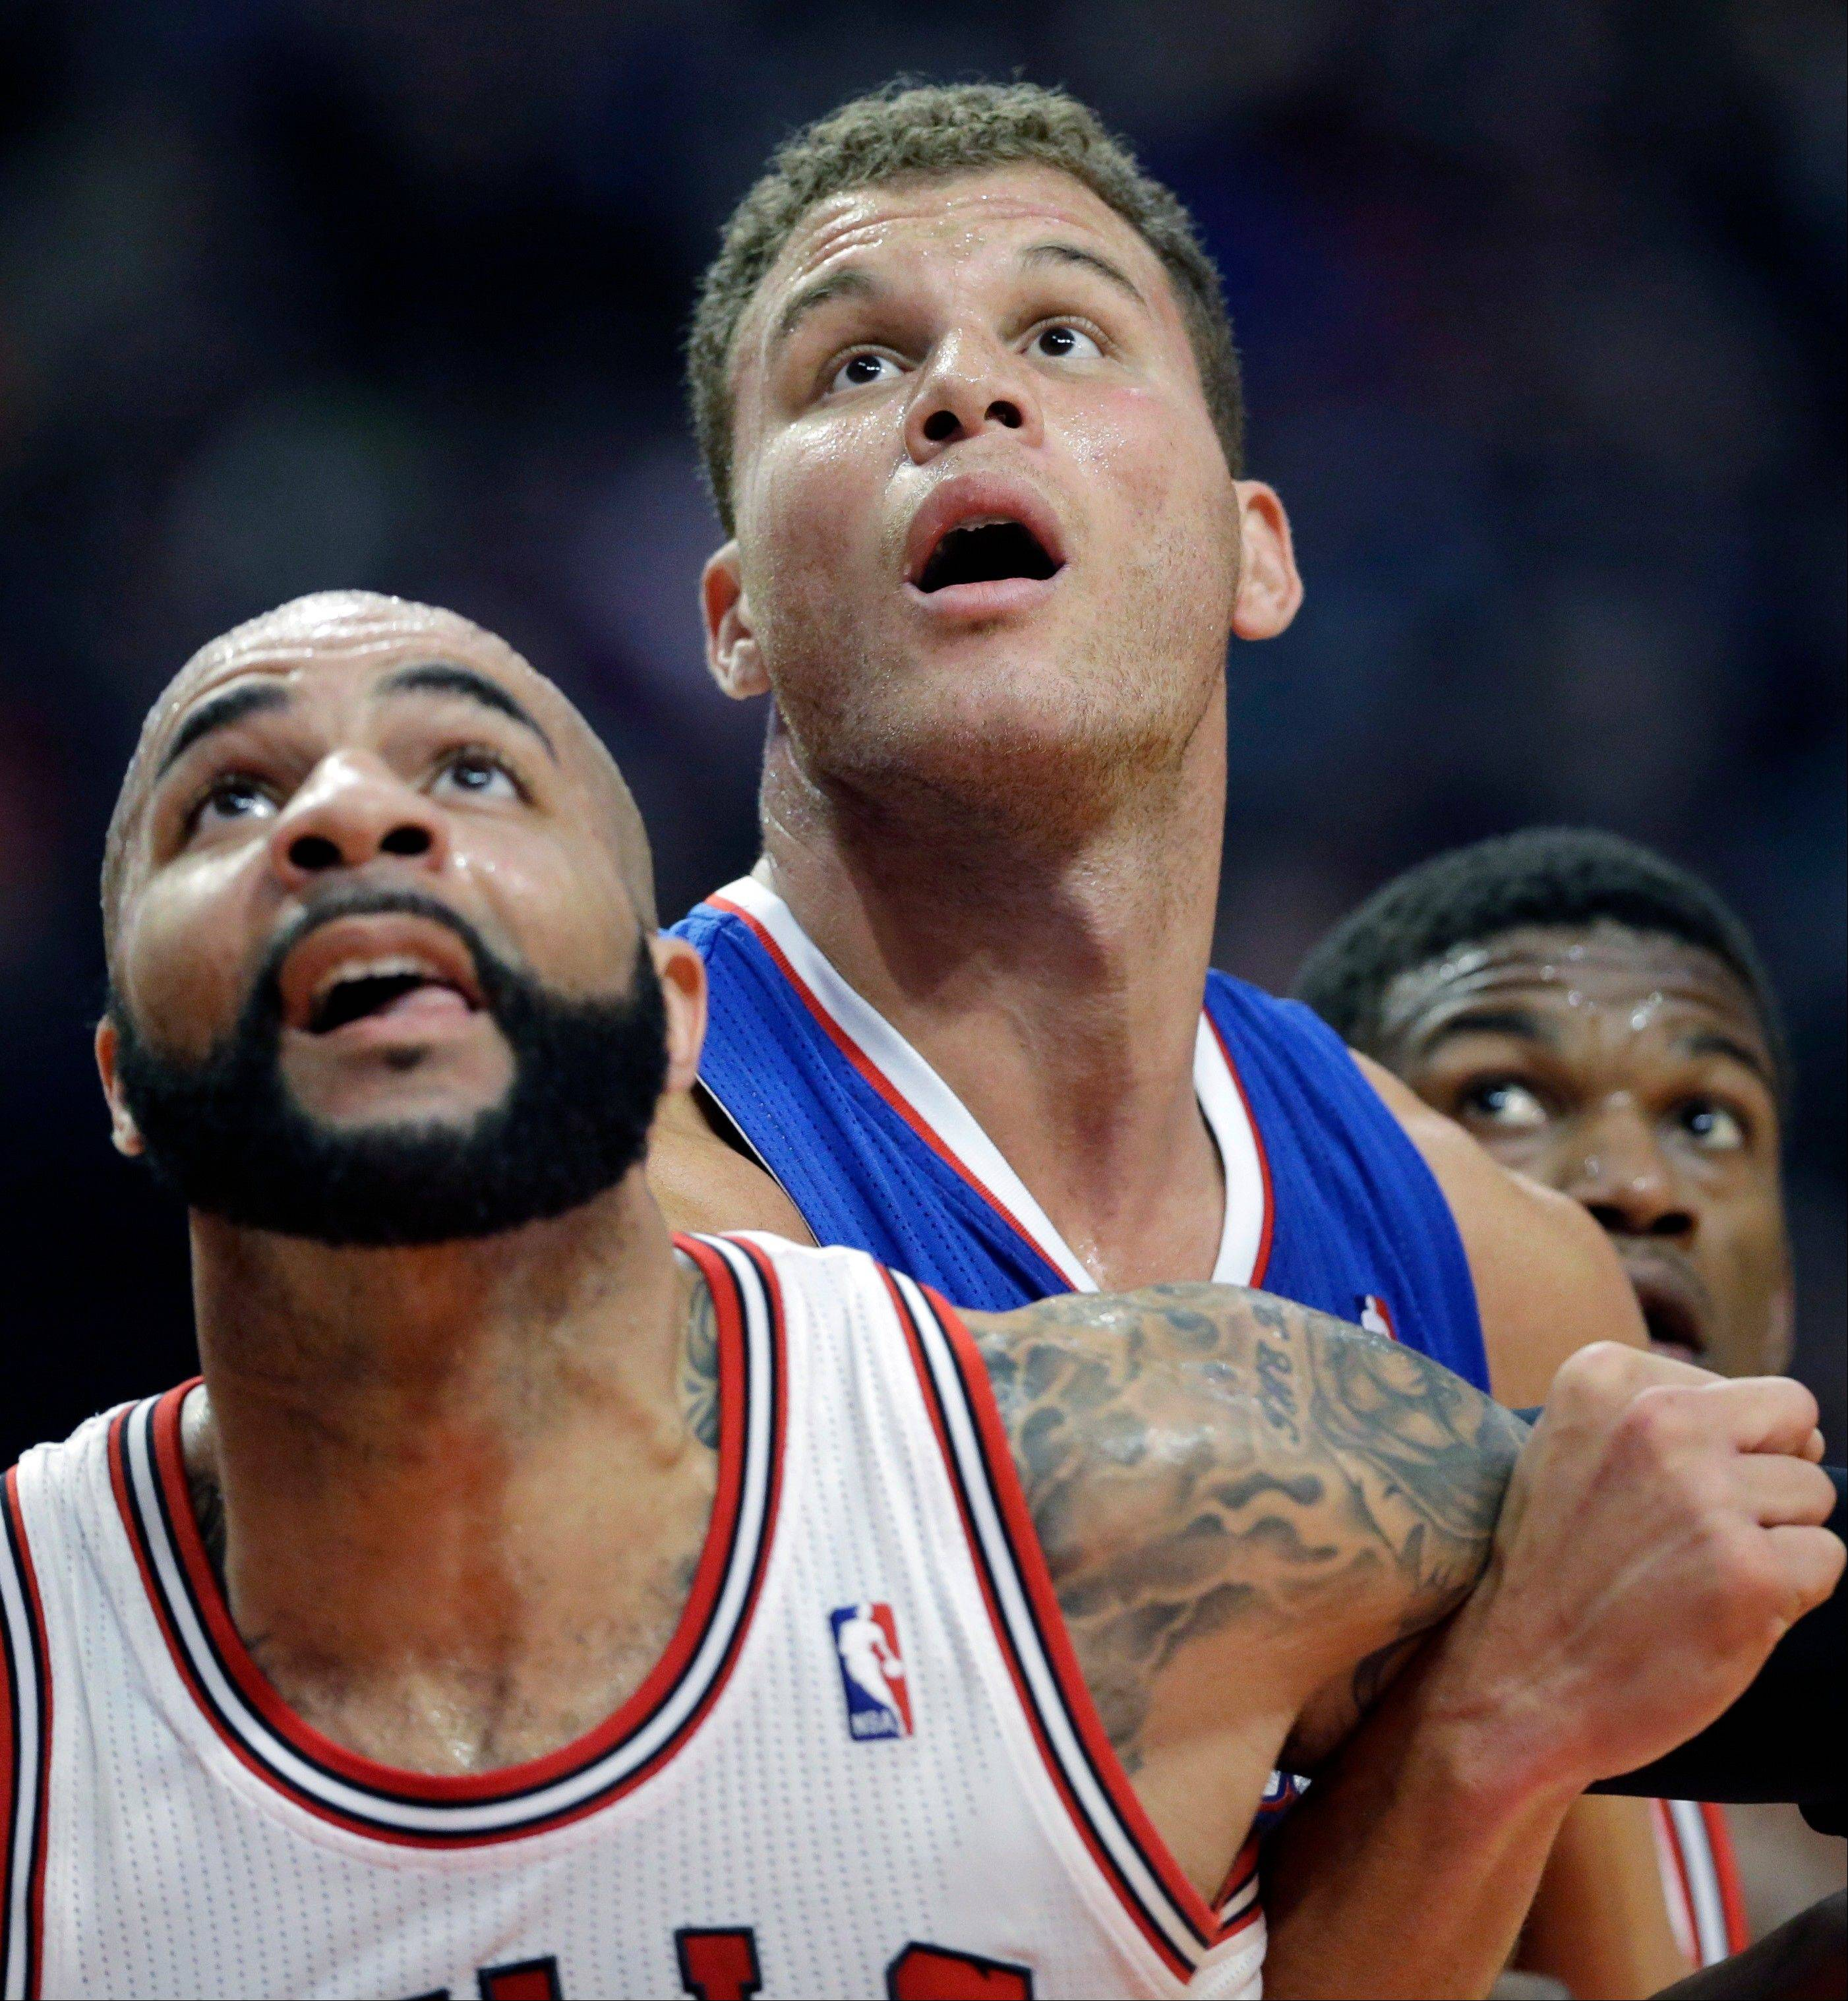 Los Angeles Clippers forward Blake Griffin, center, battles for a rebound against Chicago Bulls forward Carlos Boozer, left, and guard Jimmy Butler during the first half of an NBA basketball game in Chicago on Friday, Jan. 24, 2014.